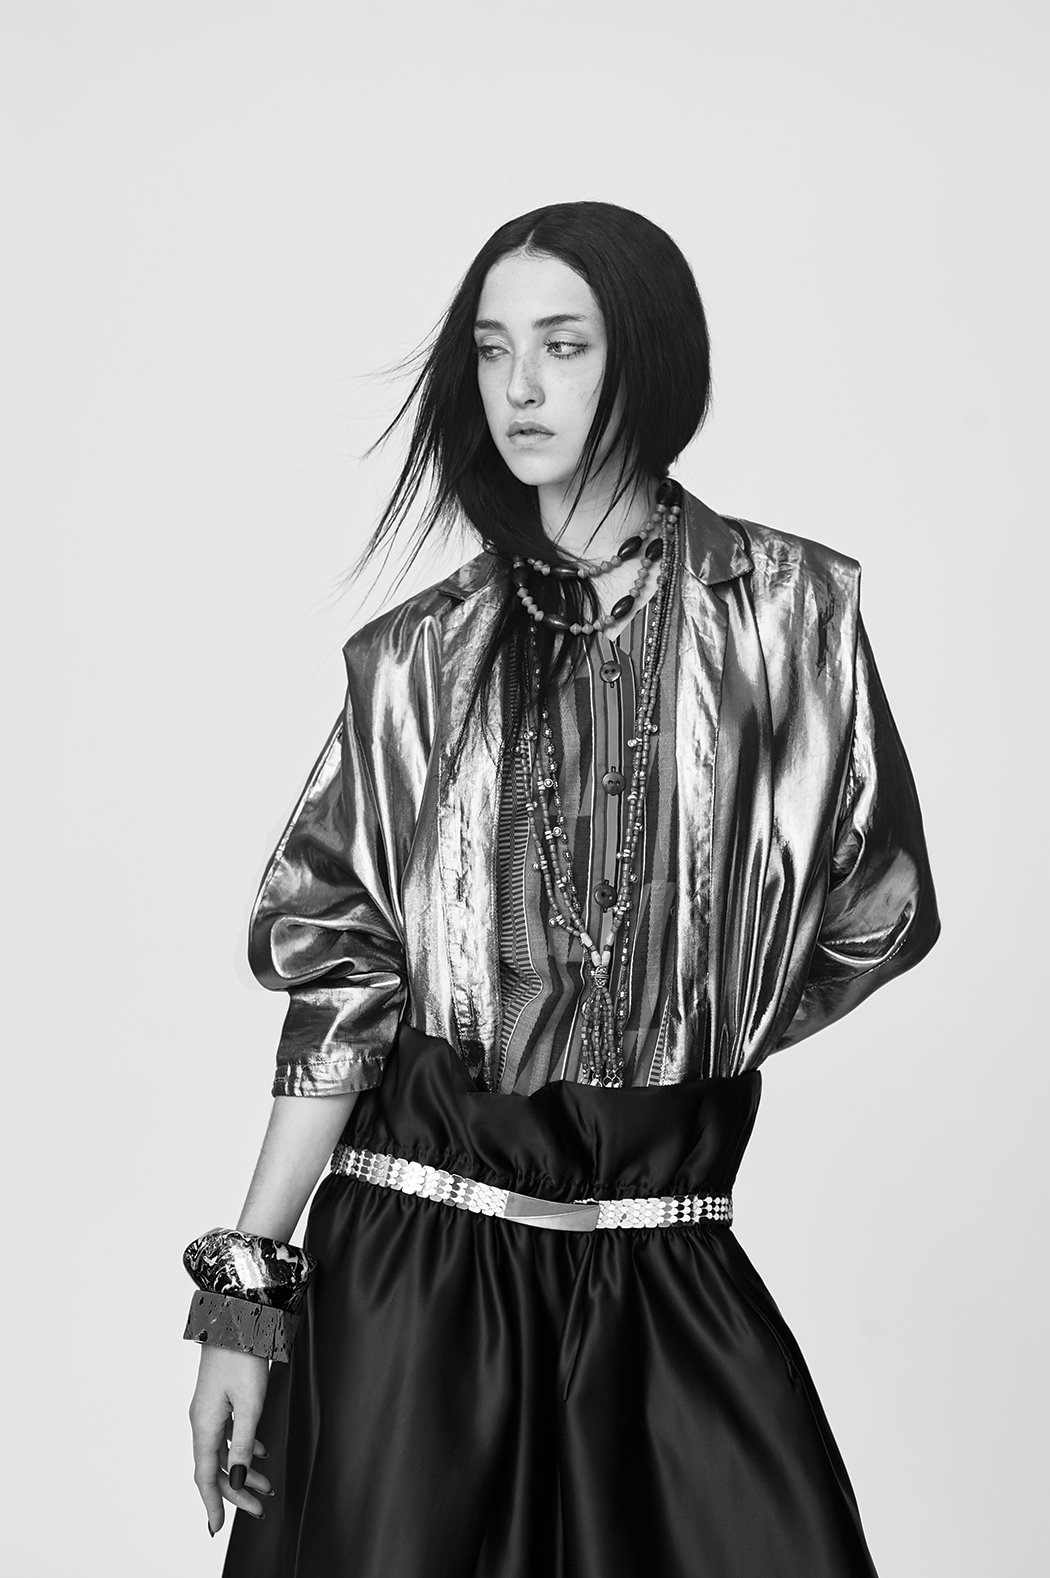 Skirt by Jiaqi Lu, BFA Fashion Design. Vintage Metallic Jacket, Vintage African Jumpsuit, and Belt. All jewelry, stylist's own.